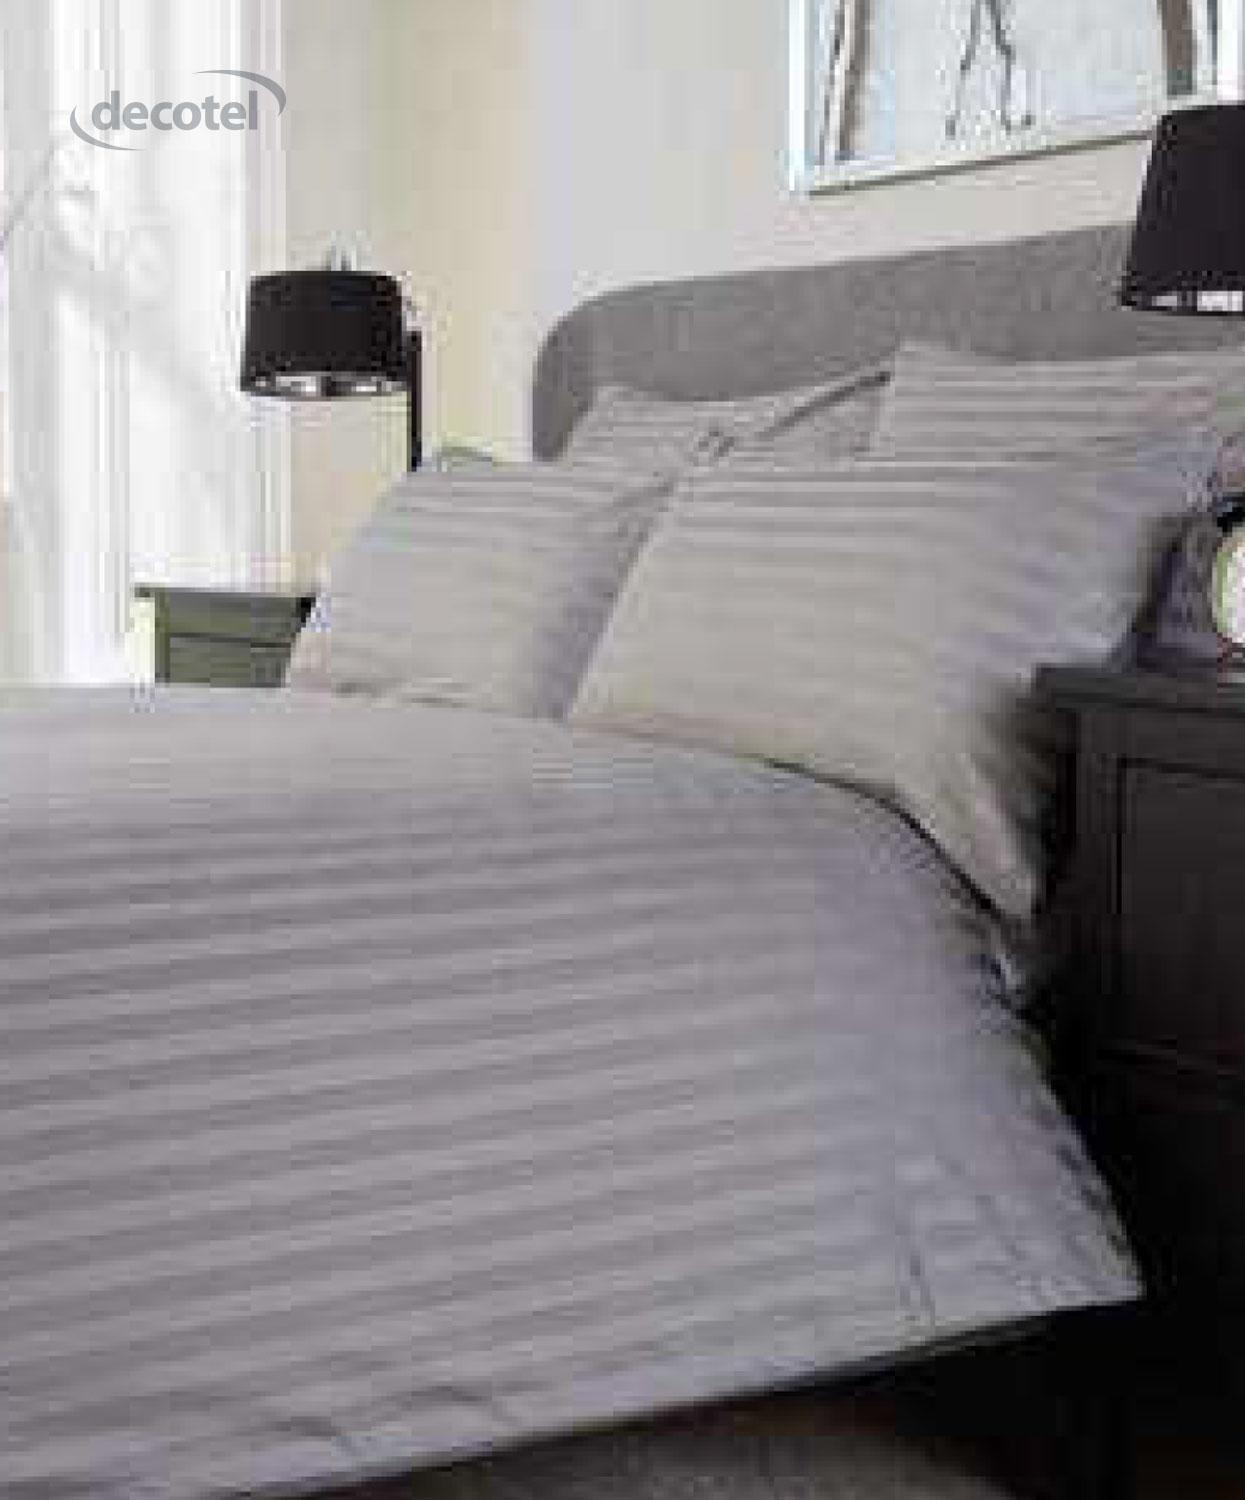 Hampstead duvet cover from Dectoel